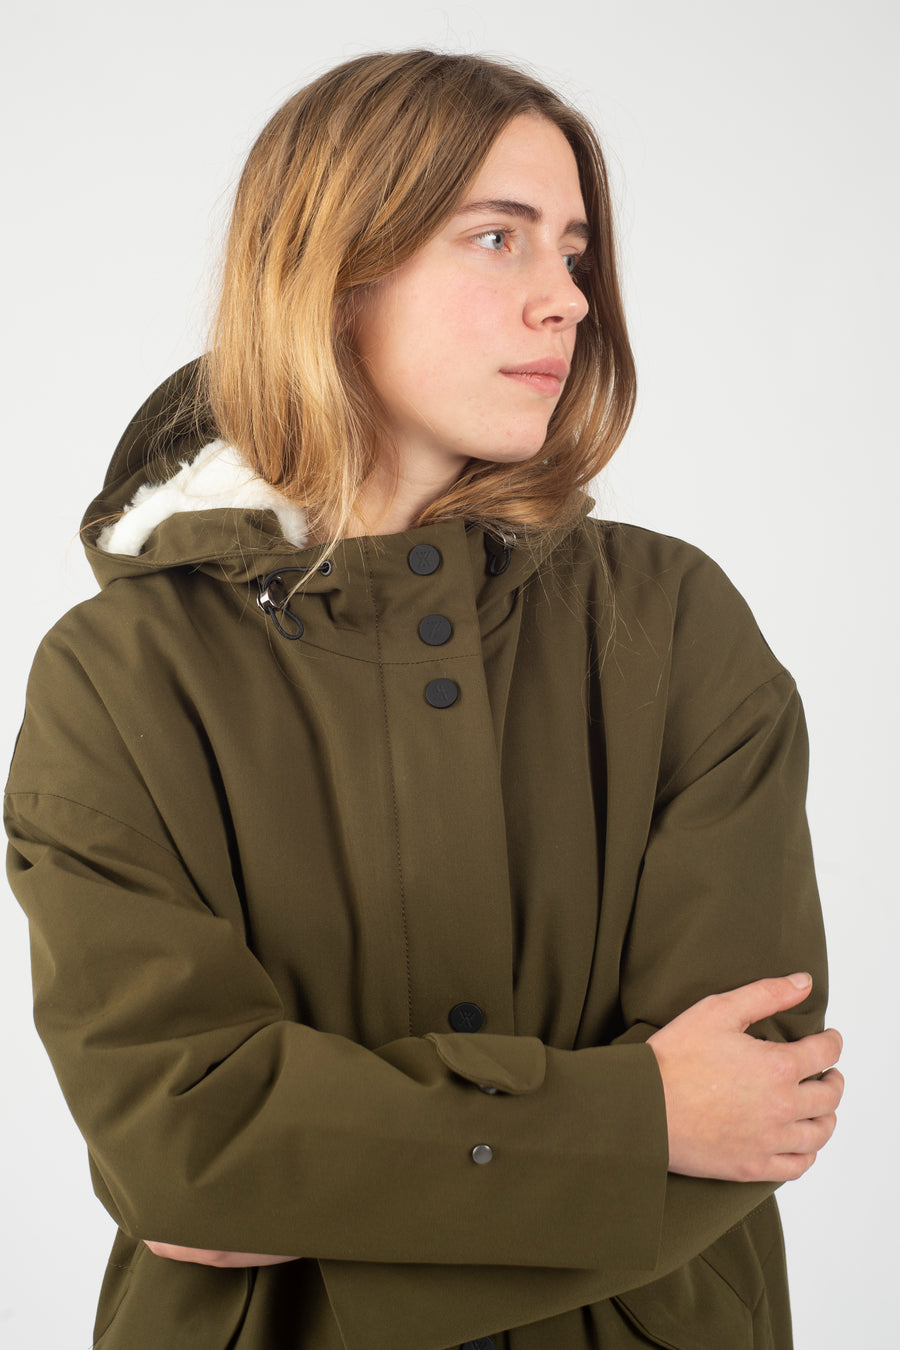 Sherpa Parka Berlingo Army - Welter Shelter - Waterproof, Windproof, breathable Packable